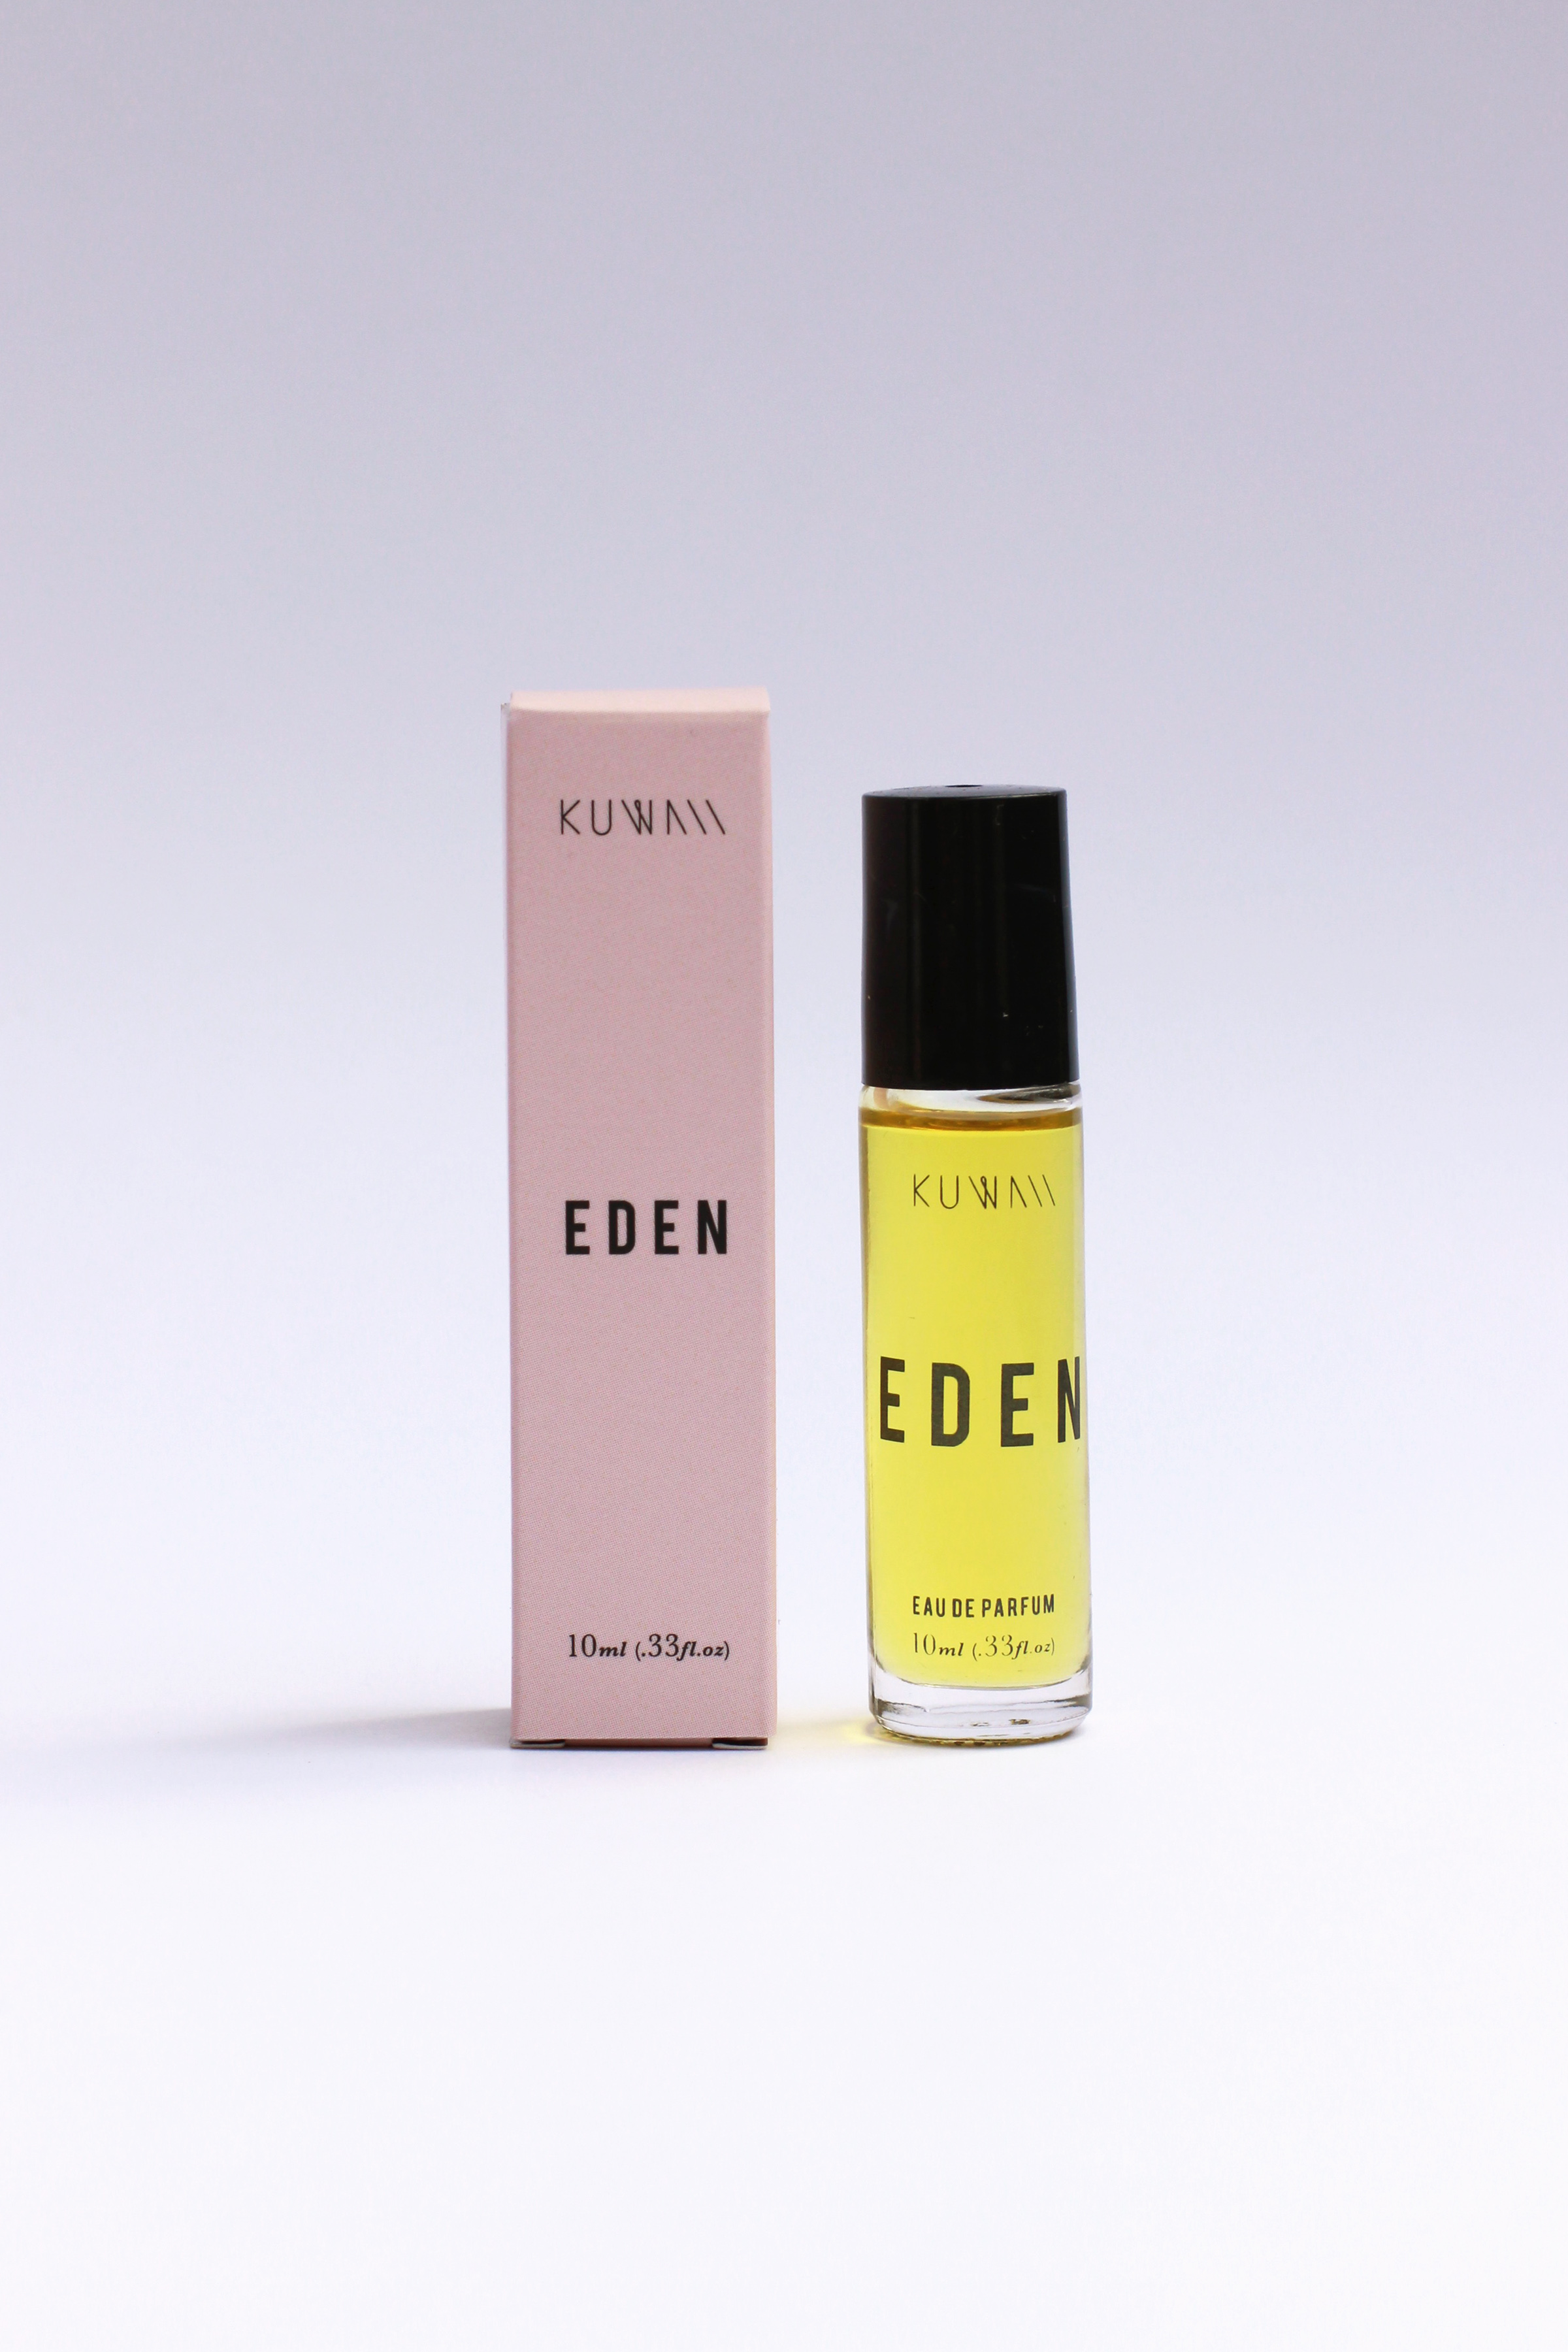 Kuwaii Eden Eau De Parfum Pre Order In Time For Mothers Day